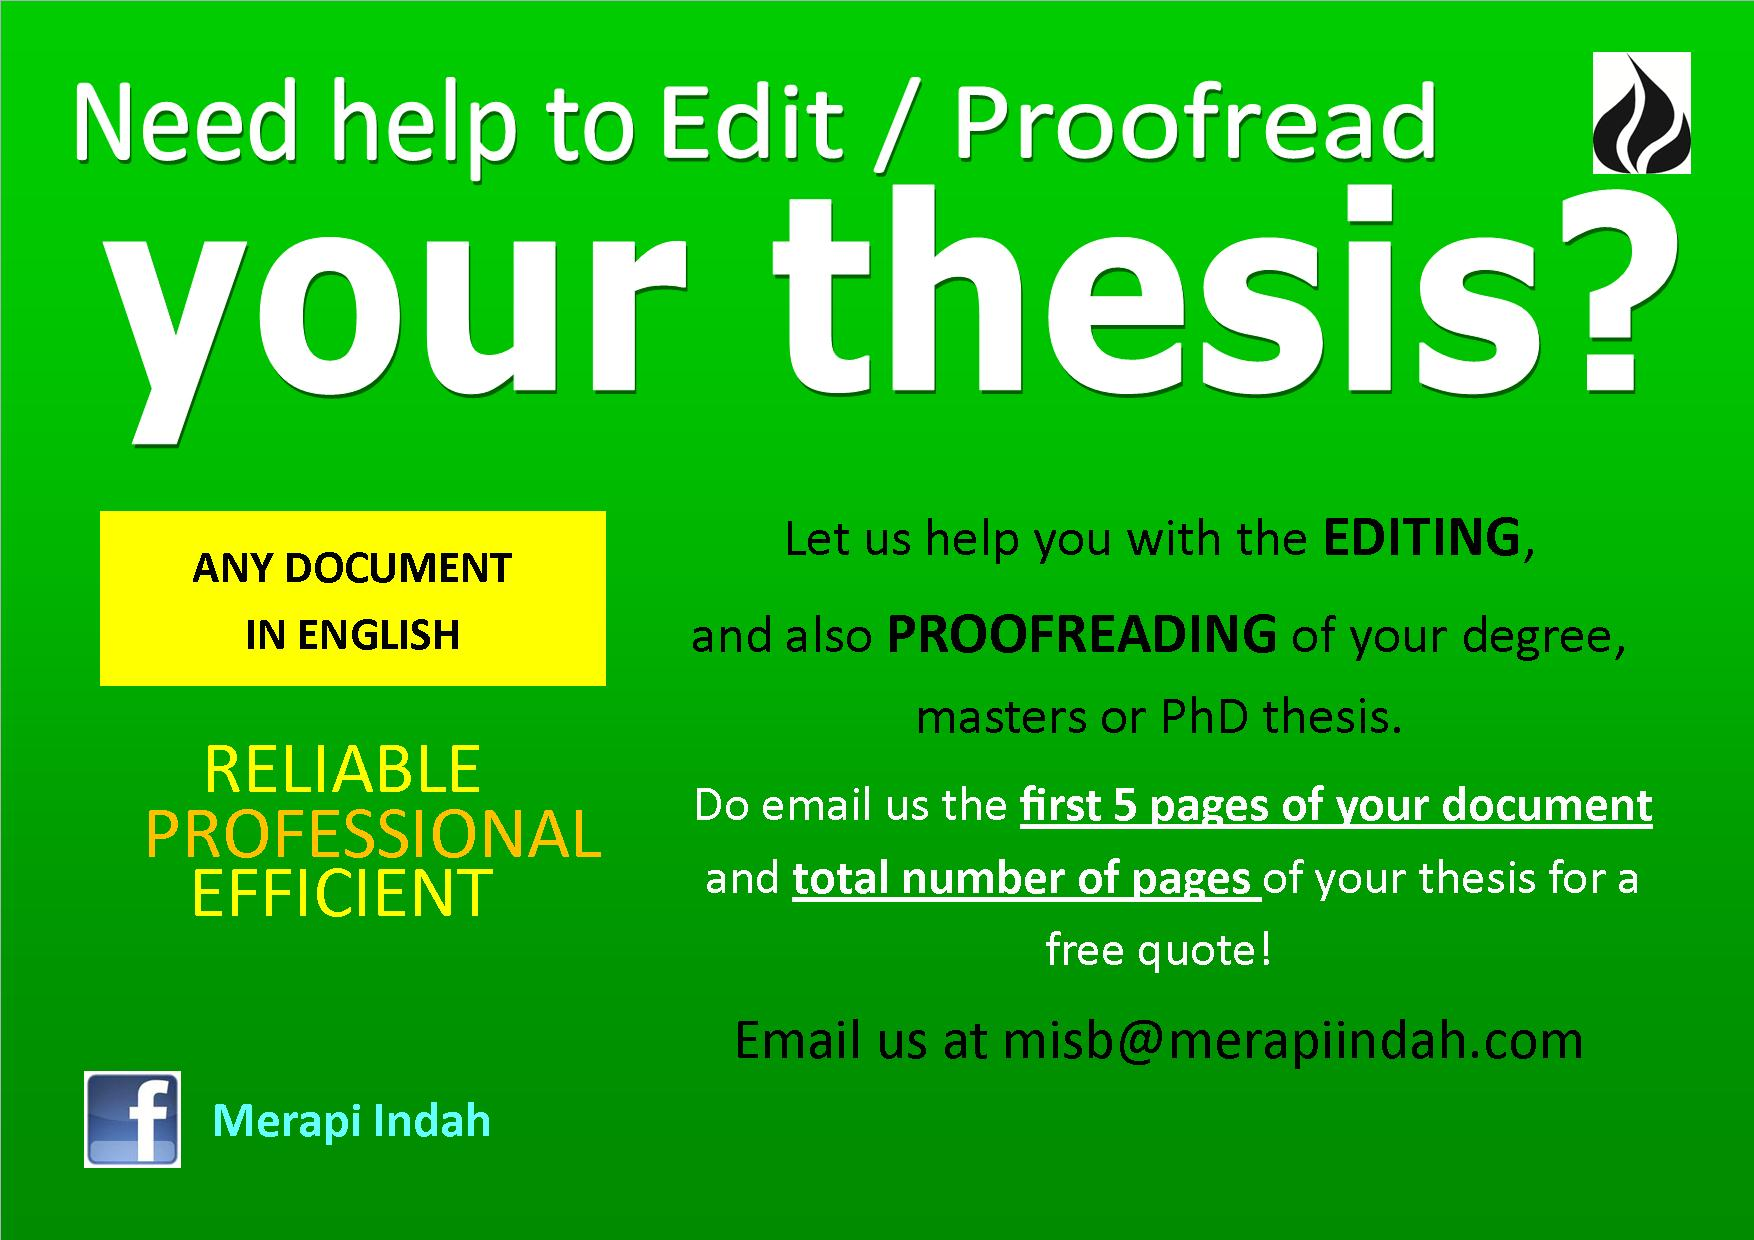 002 Essay Editing Service Misb Proofreading Flyer Thesis Impressive Free Writing Reviews Reddit Australia Full